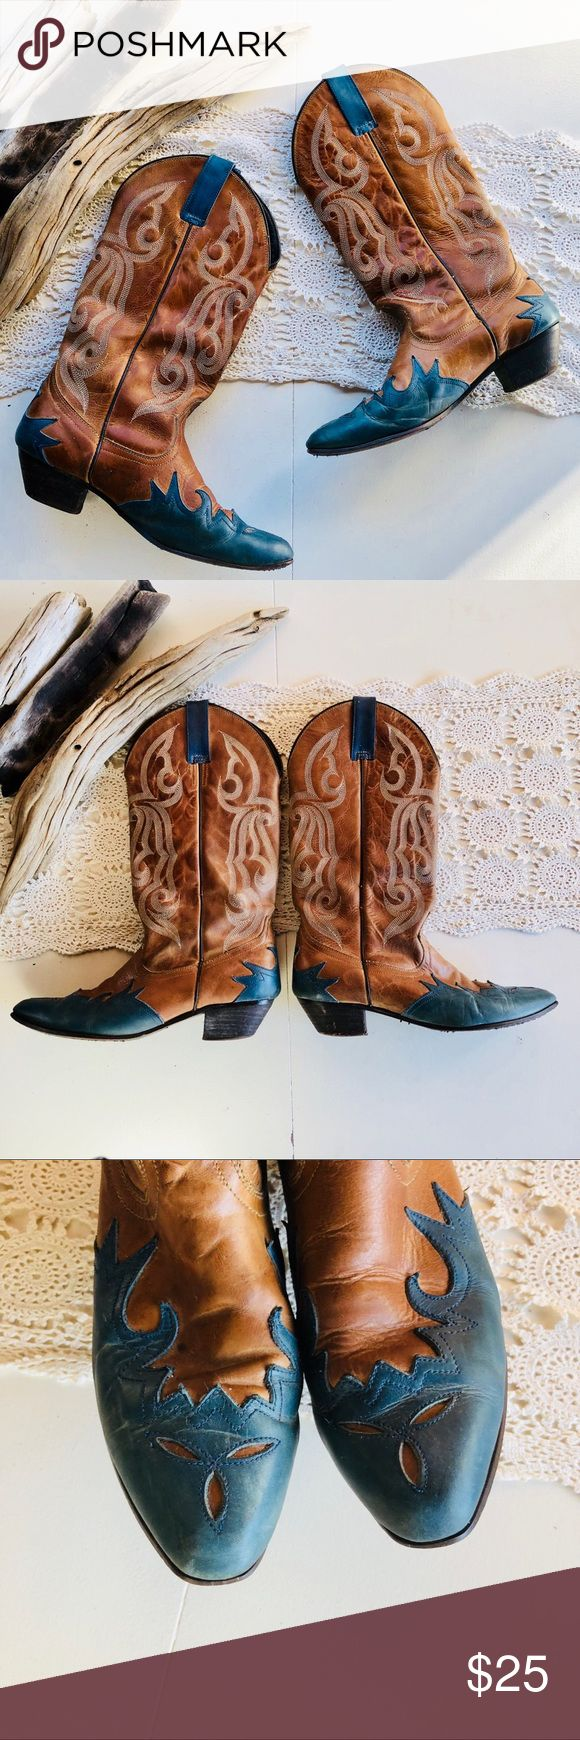 Oak Tree Farms Boots Cowboy Cowgirl Brown Leather Súper nice and comfortable boots. Has some blue leather details. Please, look at the pictures to see the signs of used.   Oak Tree Farms Boots Cowboy Cowgirl Brown Leather Womens US Size 8 Oak Tree Farm Shoes Heeled Boots